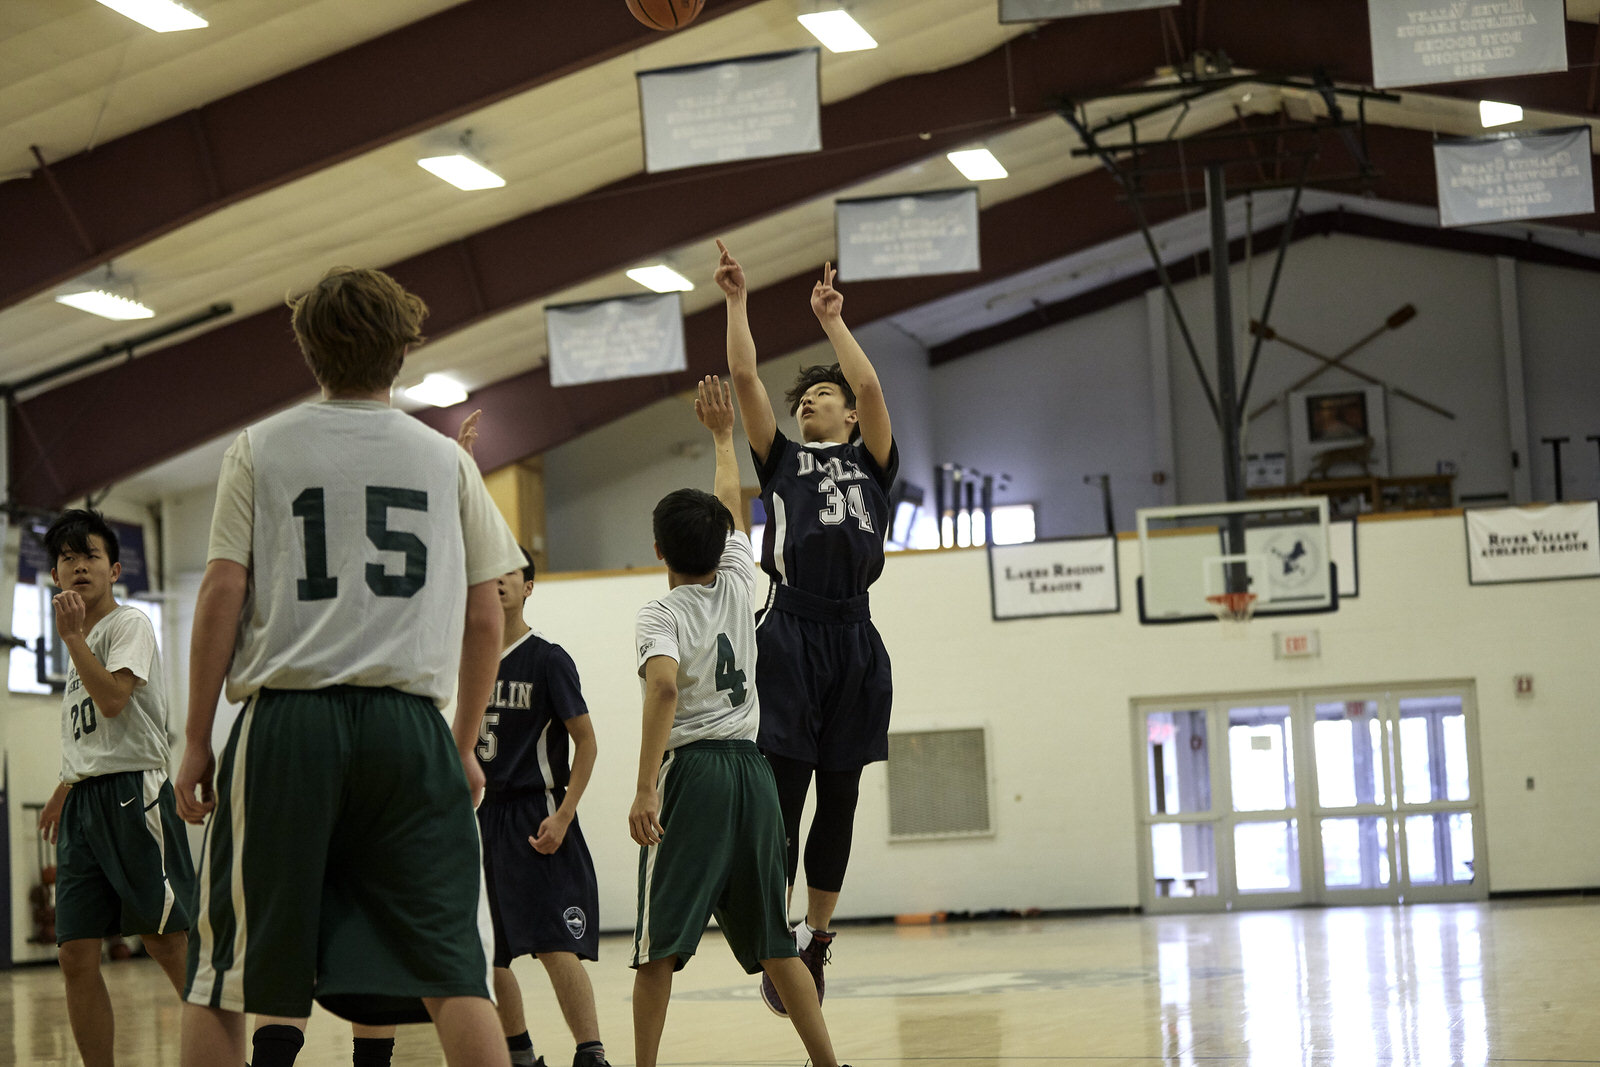 Dublin JV Boys Basketball vs High Mowing School - Jan 26 2019 - 0160.jpg